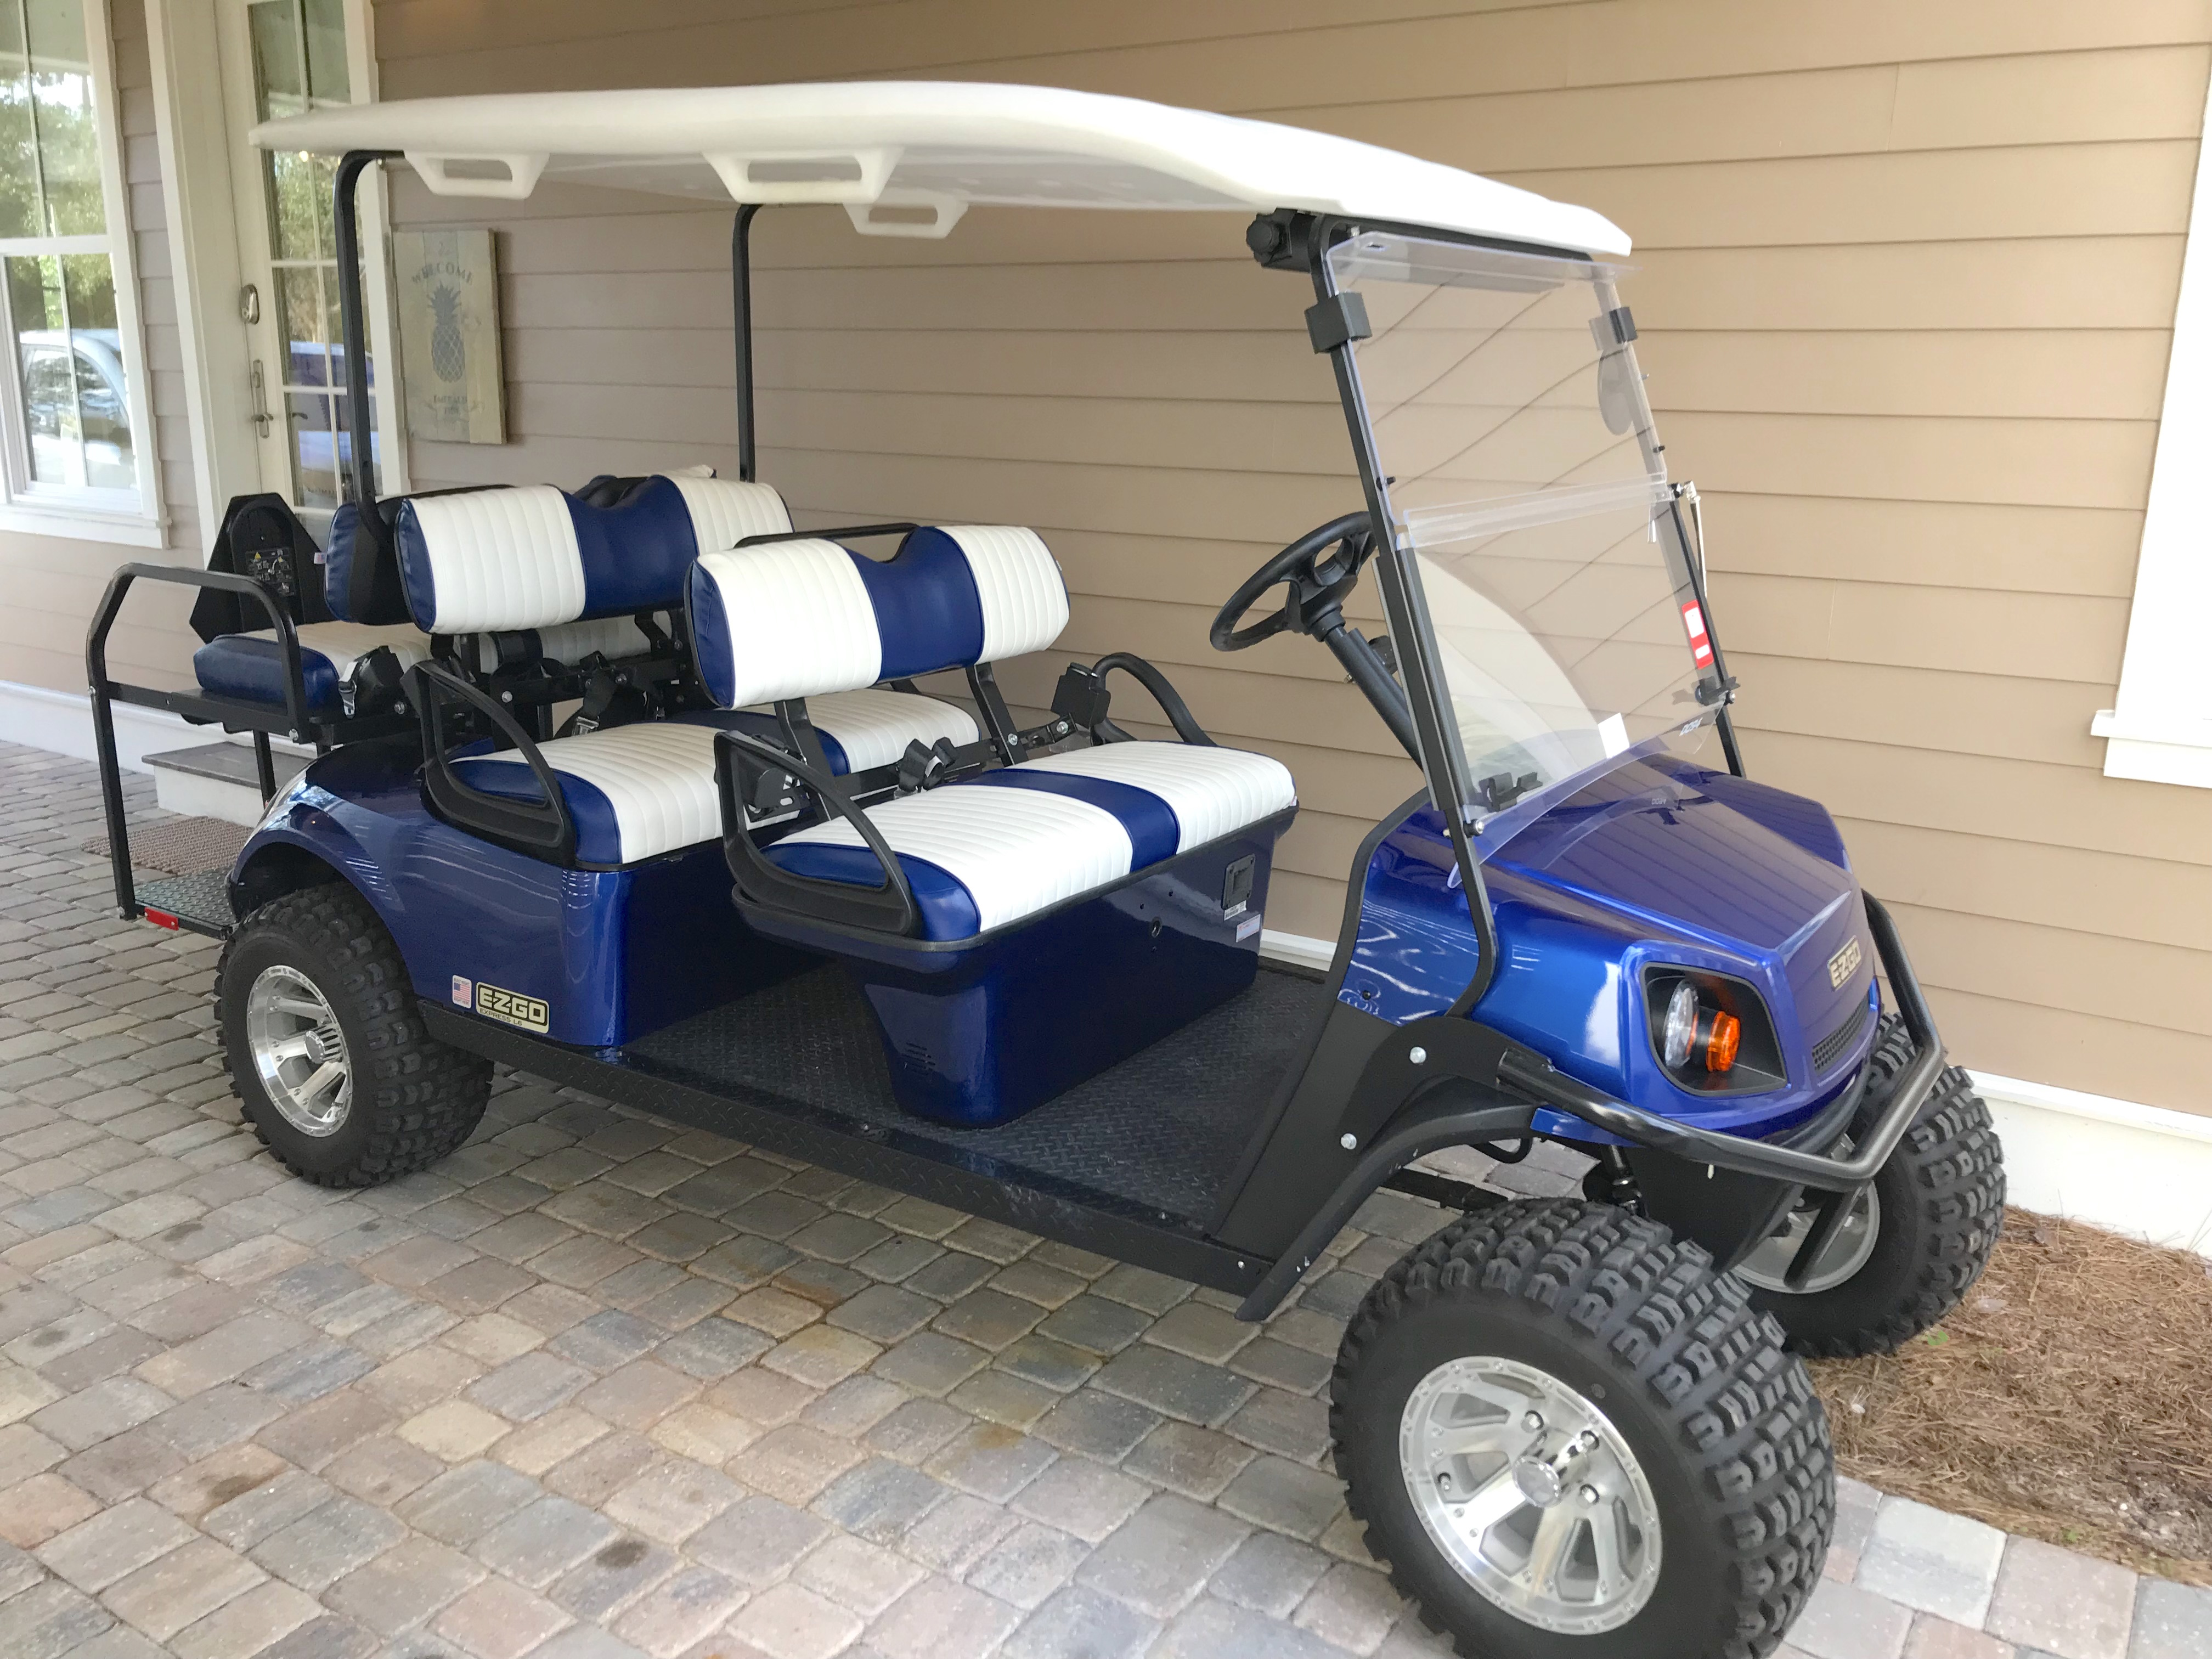 6 seat golf cart is included with the home